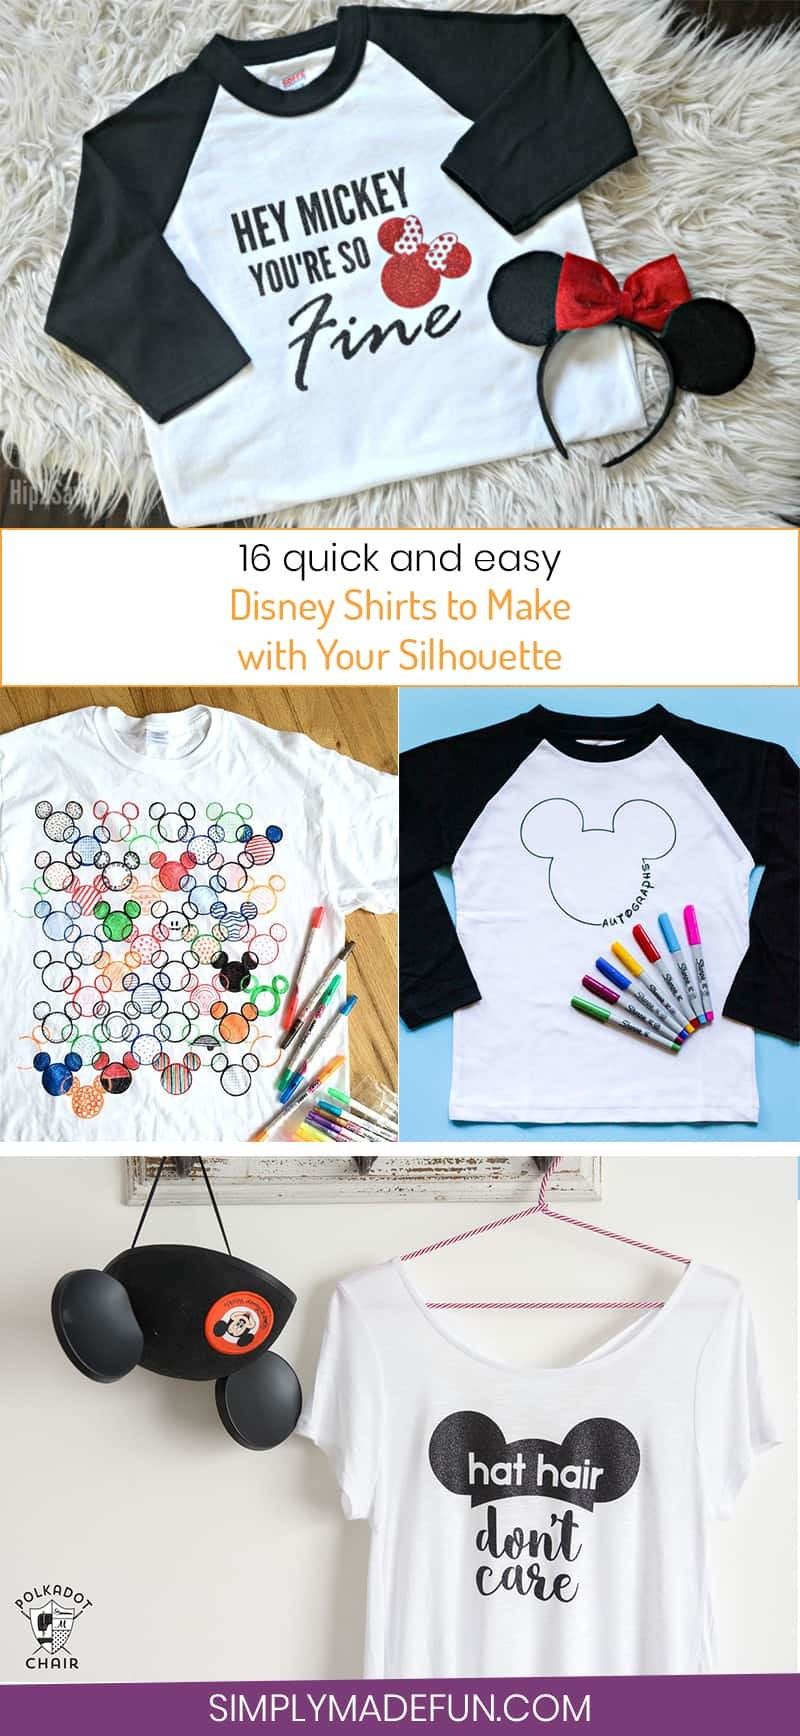 Disney Shirts to Make with Your Silhouette - Before heading to the Disney parks for your next family vacation you should pull out your Silhouette Cameo and DIY some custom shirts for you and the family. We love showing off our personalities with handmade shirts and they make great conversation starters when you meet Mickey and his friends!